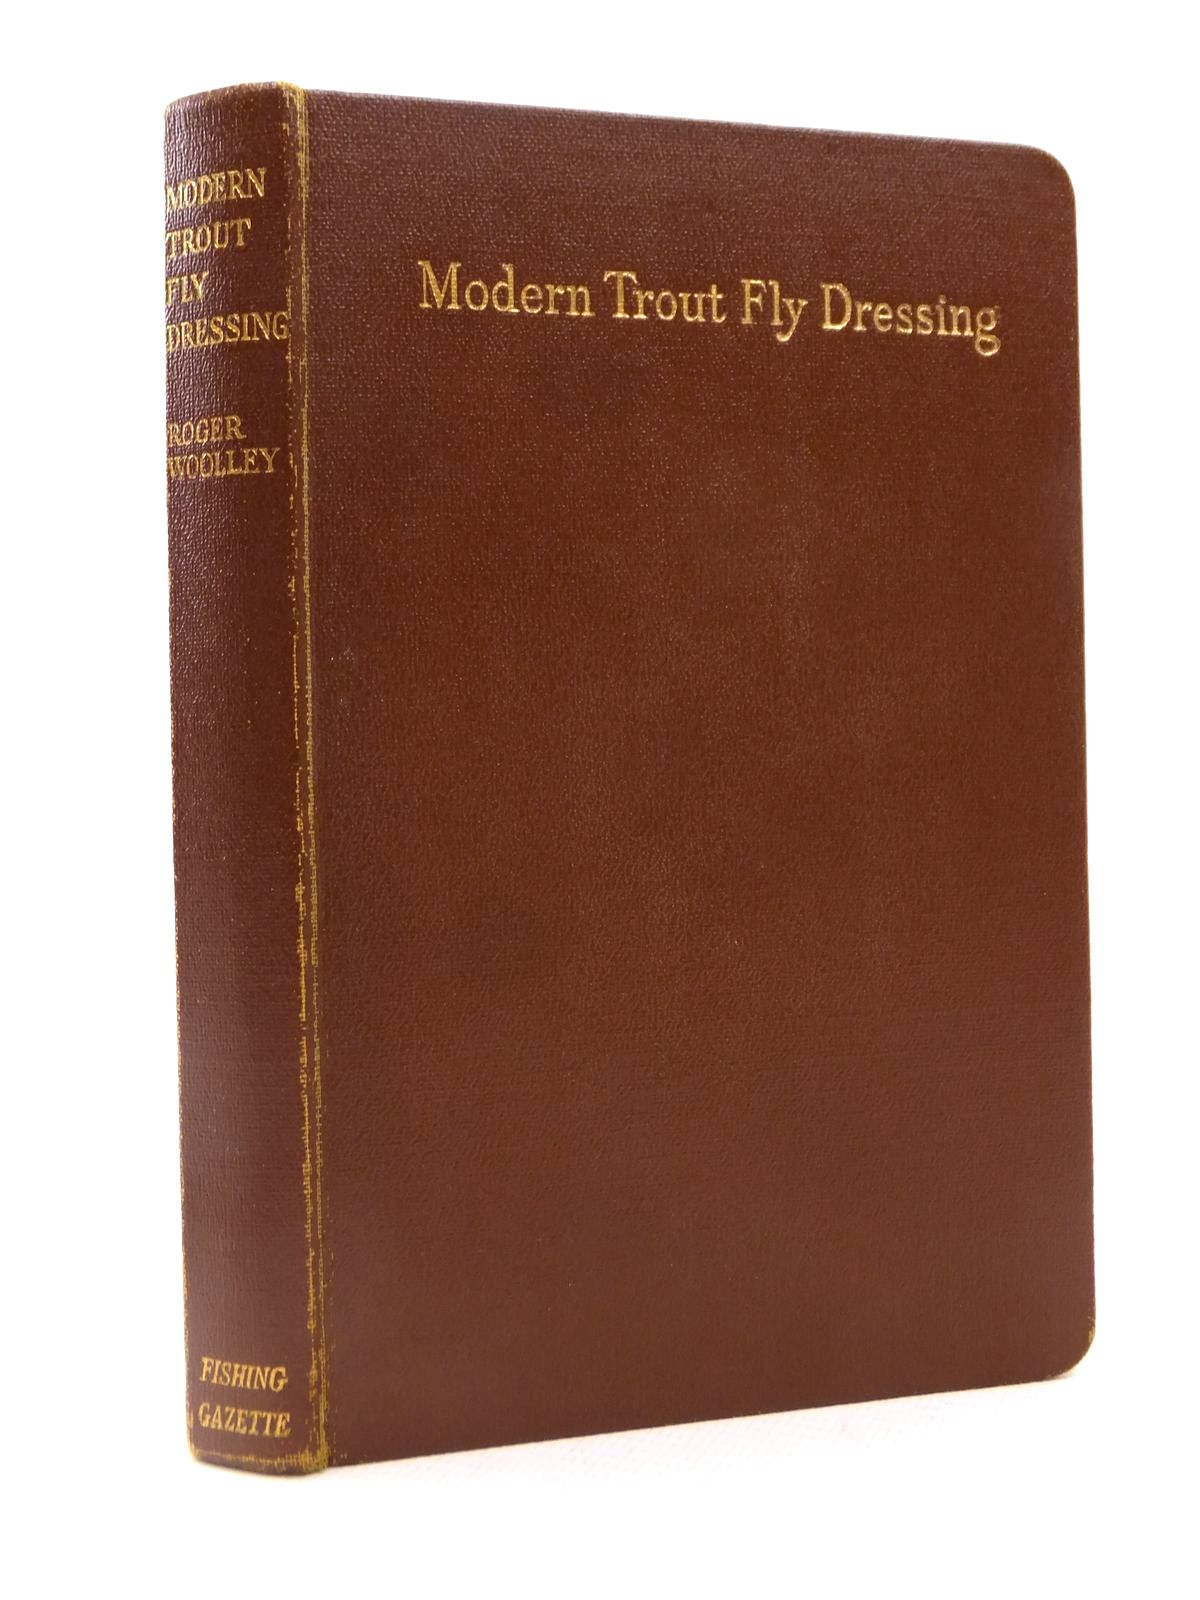 Photo of MODERN TROUT FLY DRESSING written by Woolley, Roger published by The Fishing Gazette (STOCK CODE: 1812733)  for sale by Stella & Rose's Books